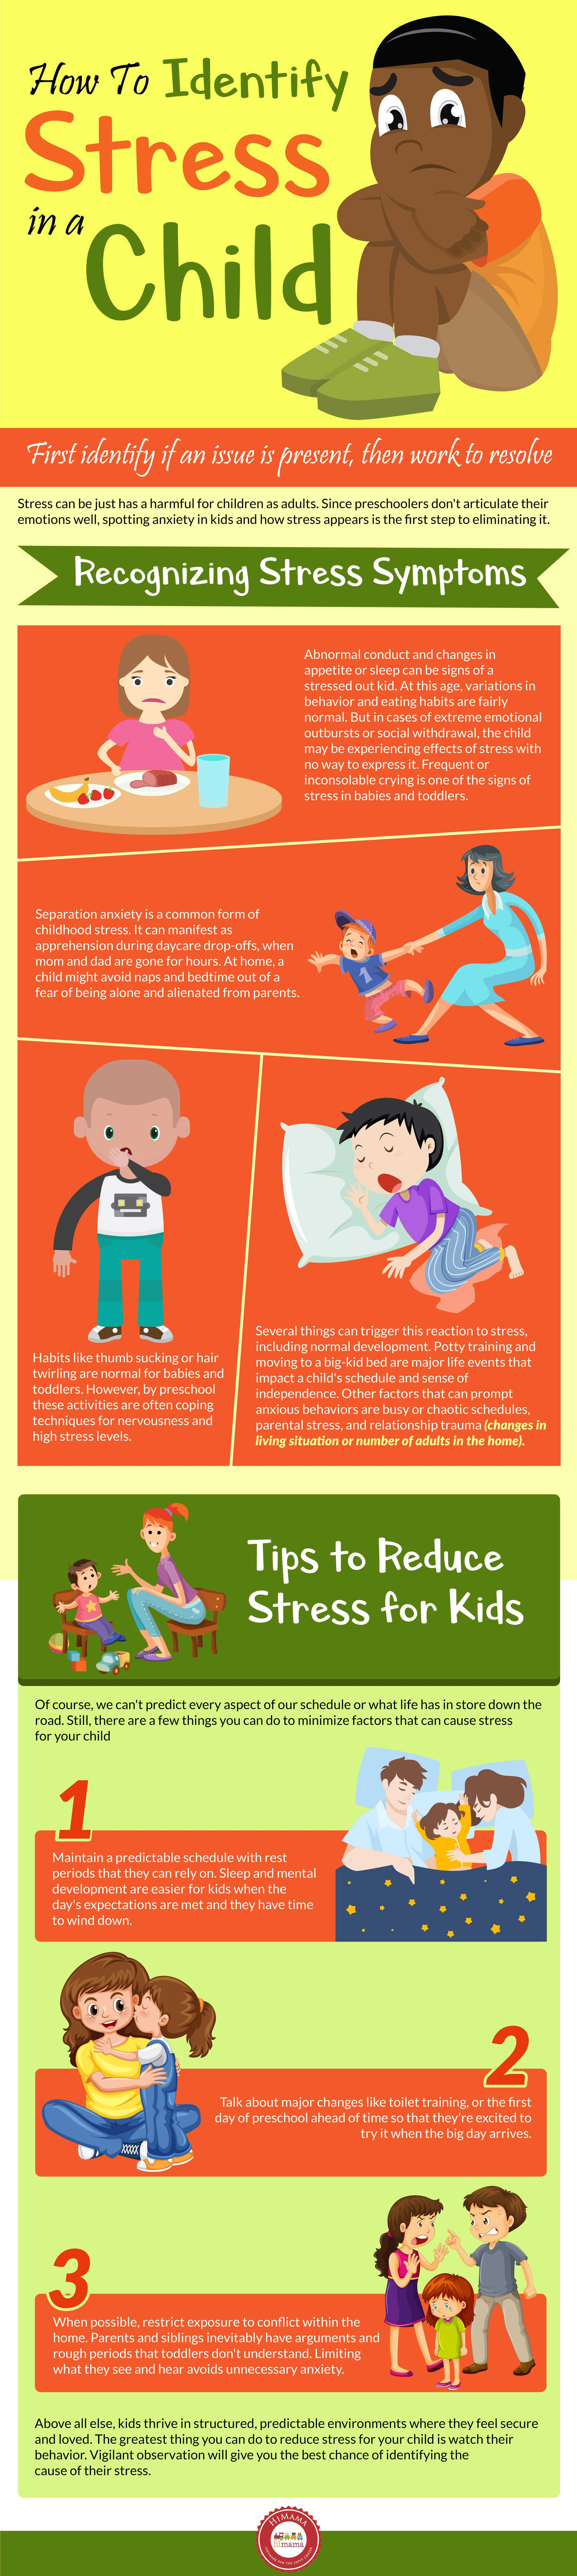 How To Identify Stress In A Child